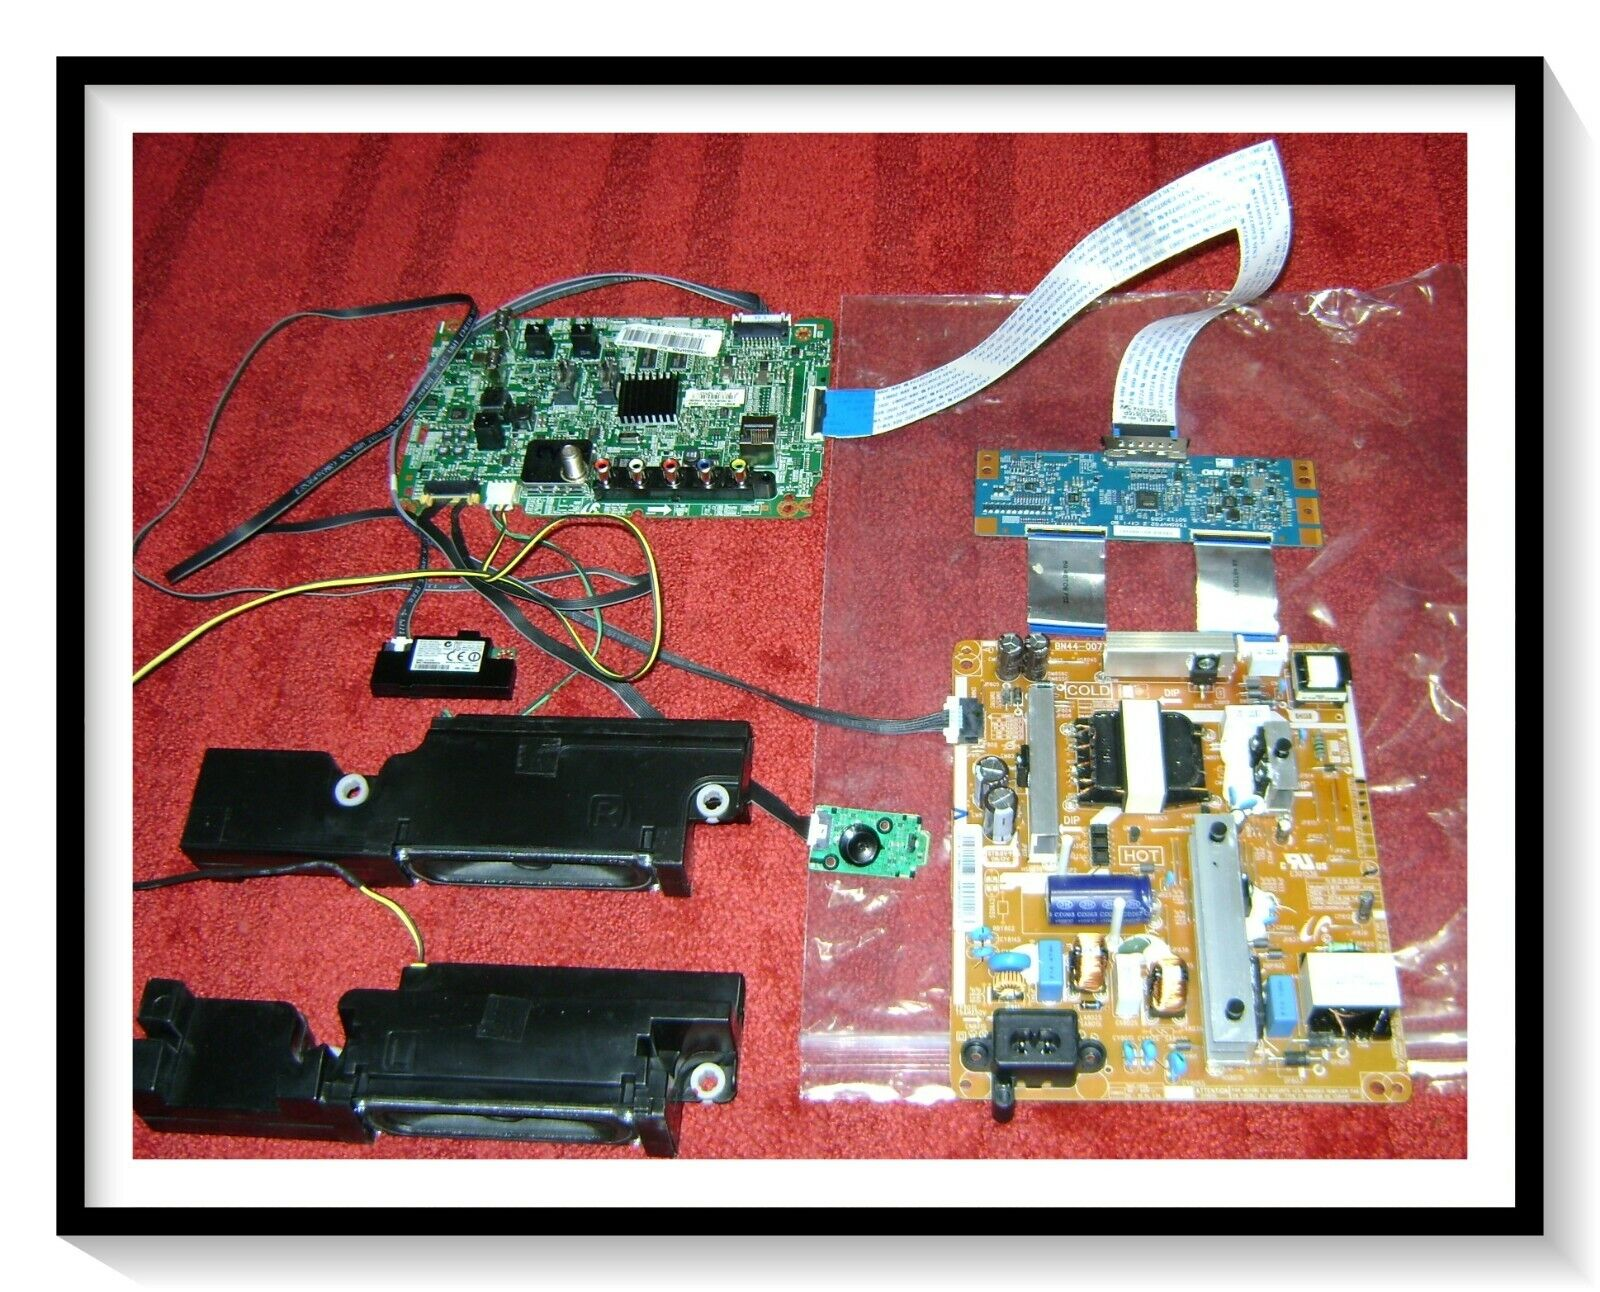 SAMSUNG BOARDS FOR UN50H6203 POWER-TCON-MAIN MORE ALL 100 FUNCTIONAL 69NR WOW - $69.00